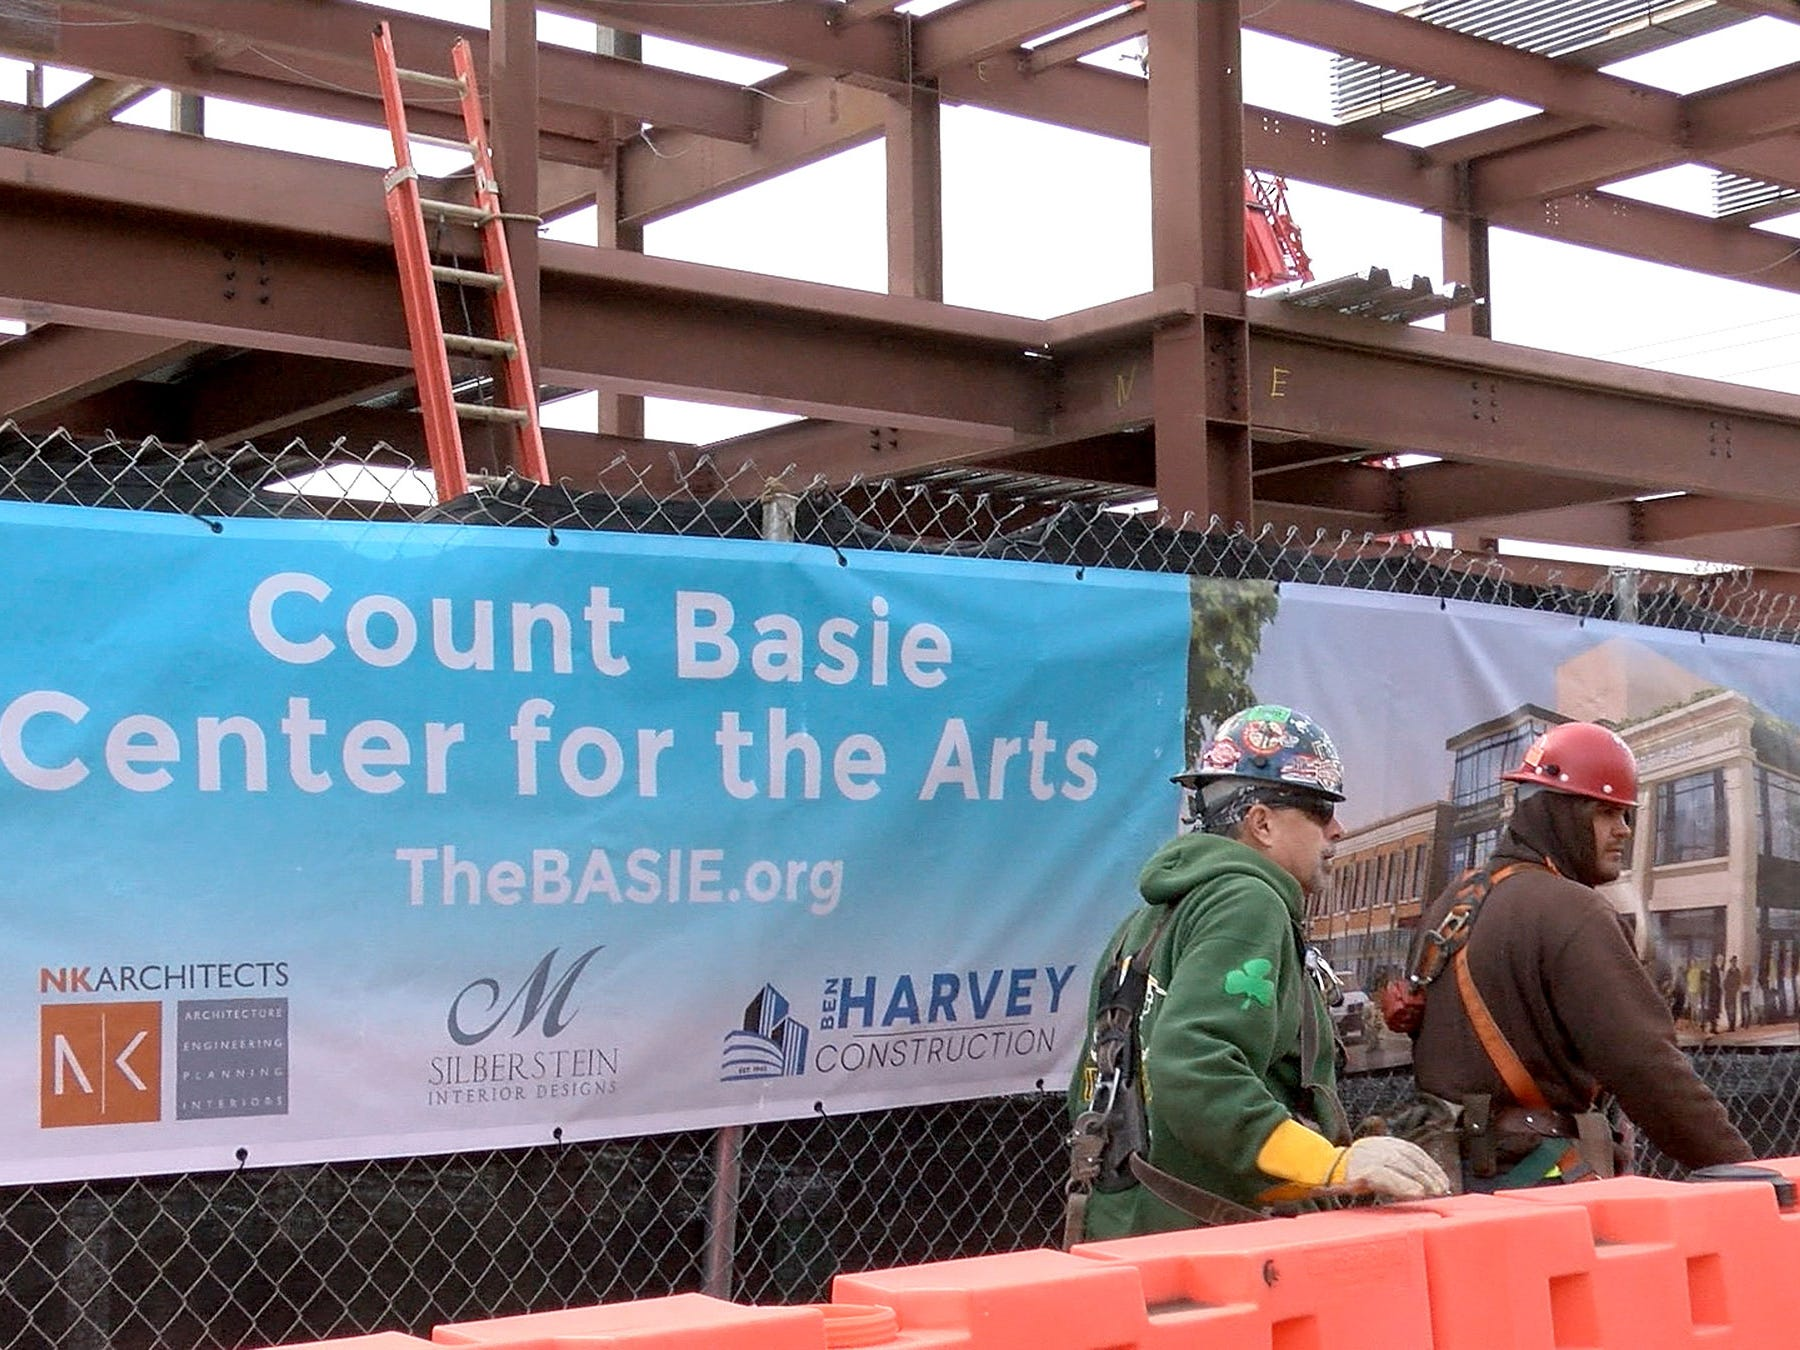 Workmen are shown outside the site of the Count Baise Theatre for the Arts in Red Bank Friday, October 26, 2018.   A new partnership was announced between the theatre and Hackensack Meridian Health.